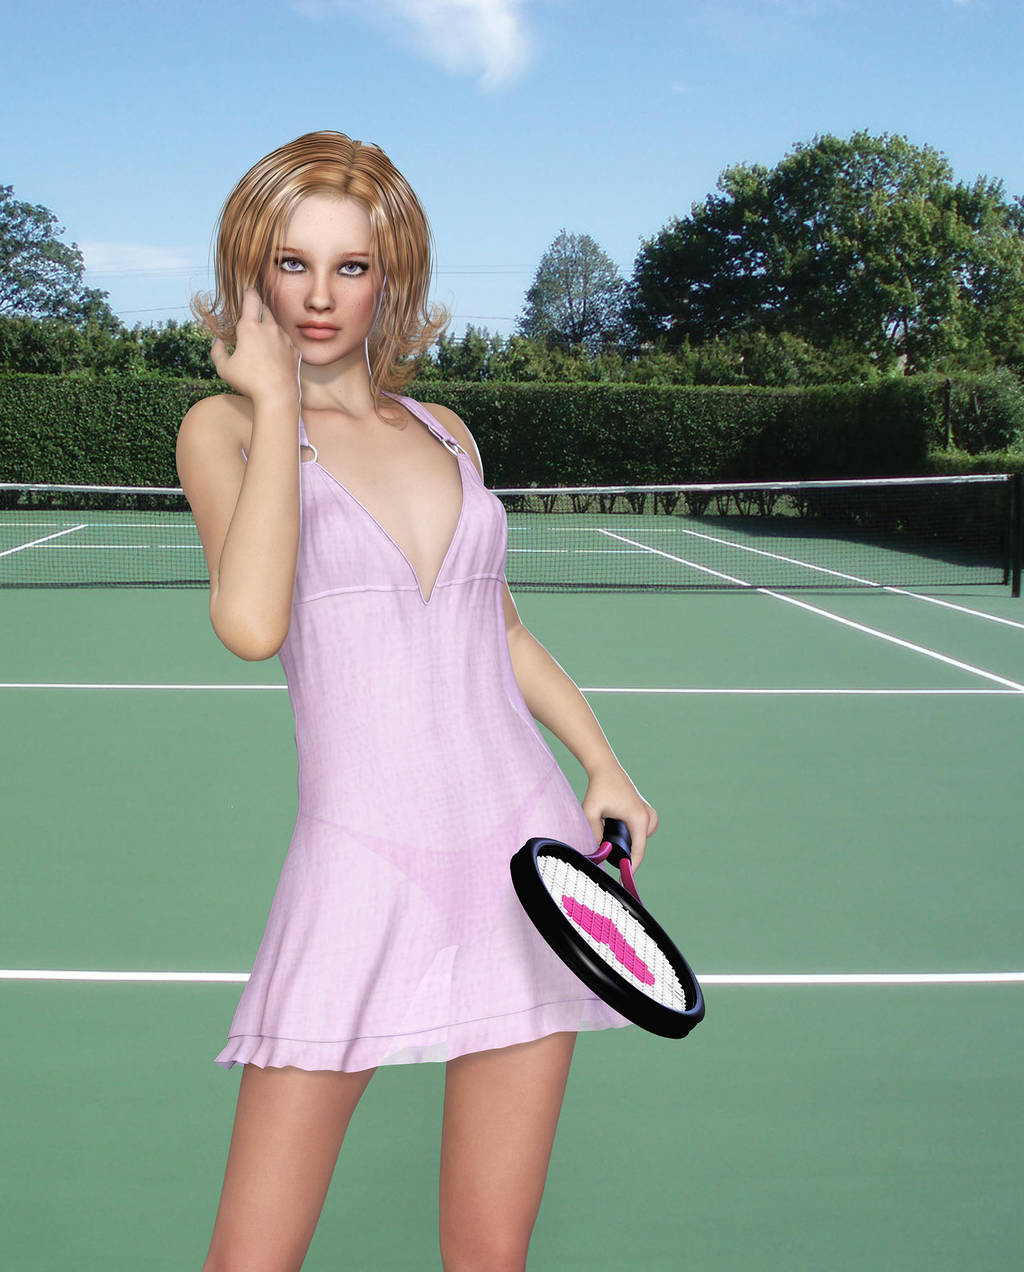 Anyone For Tennis? by Roy3D